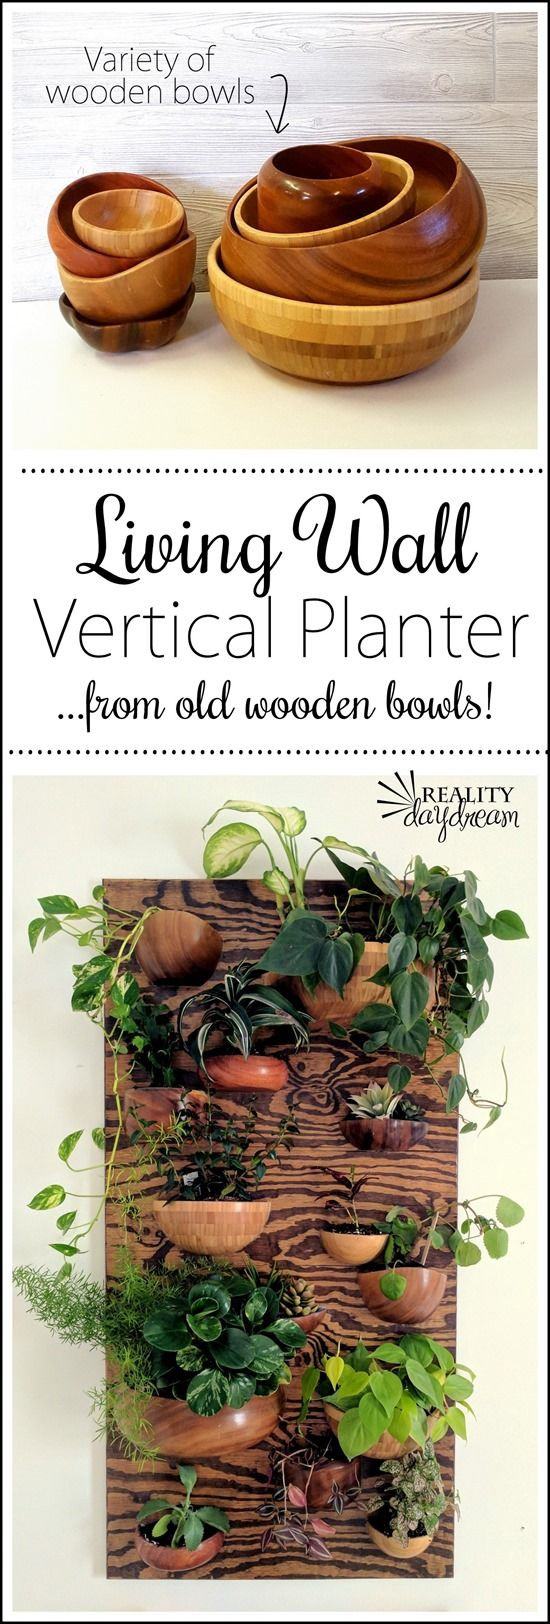 Vertical planter Living Wall made with wooden bowls cut in half! {Reality Daydream}